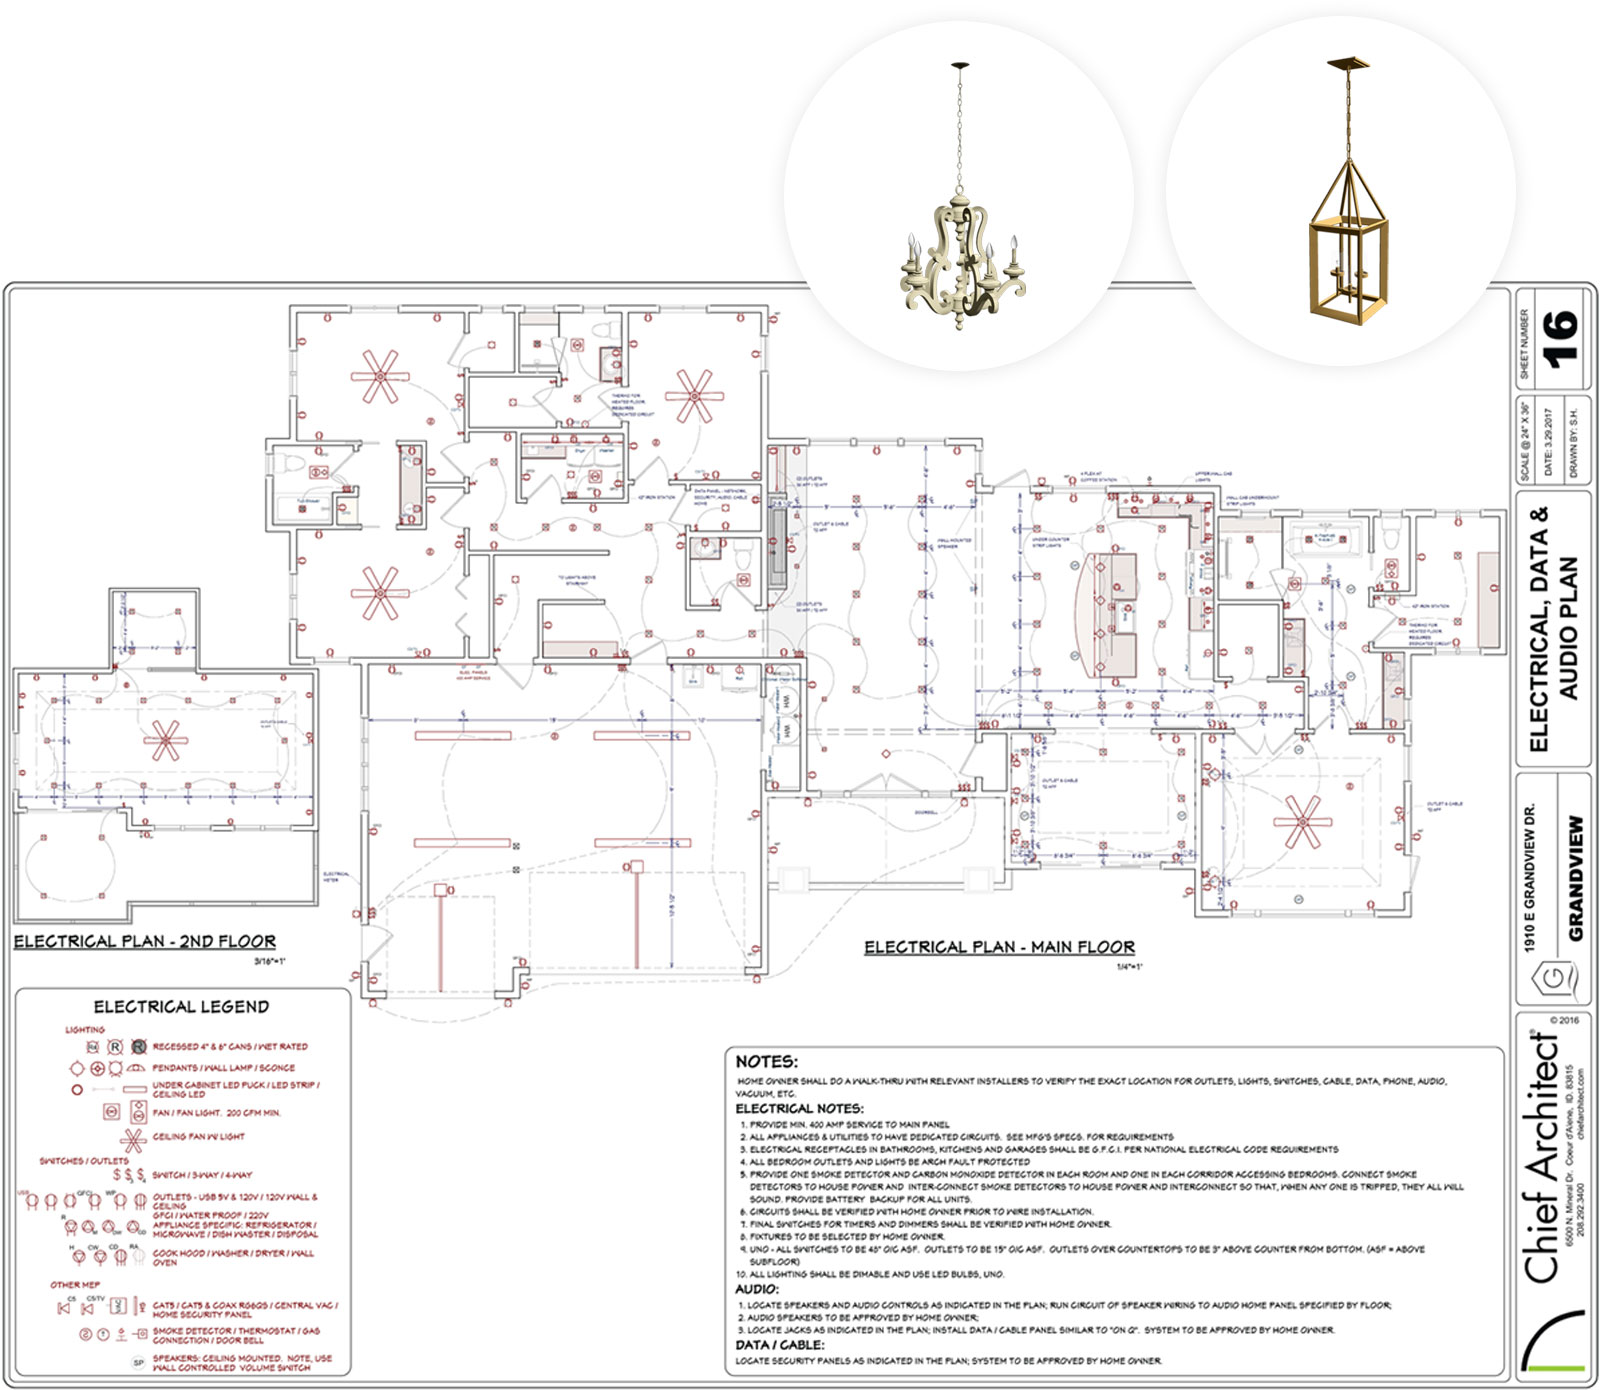 Sample Electrical U0026 Lighting Planset